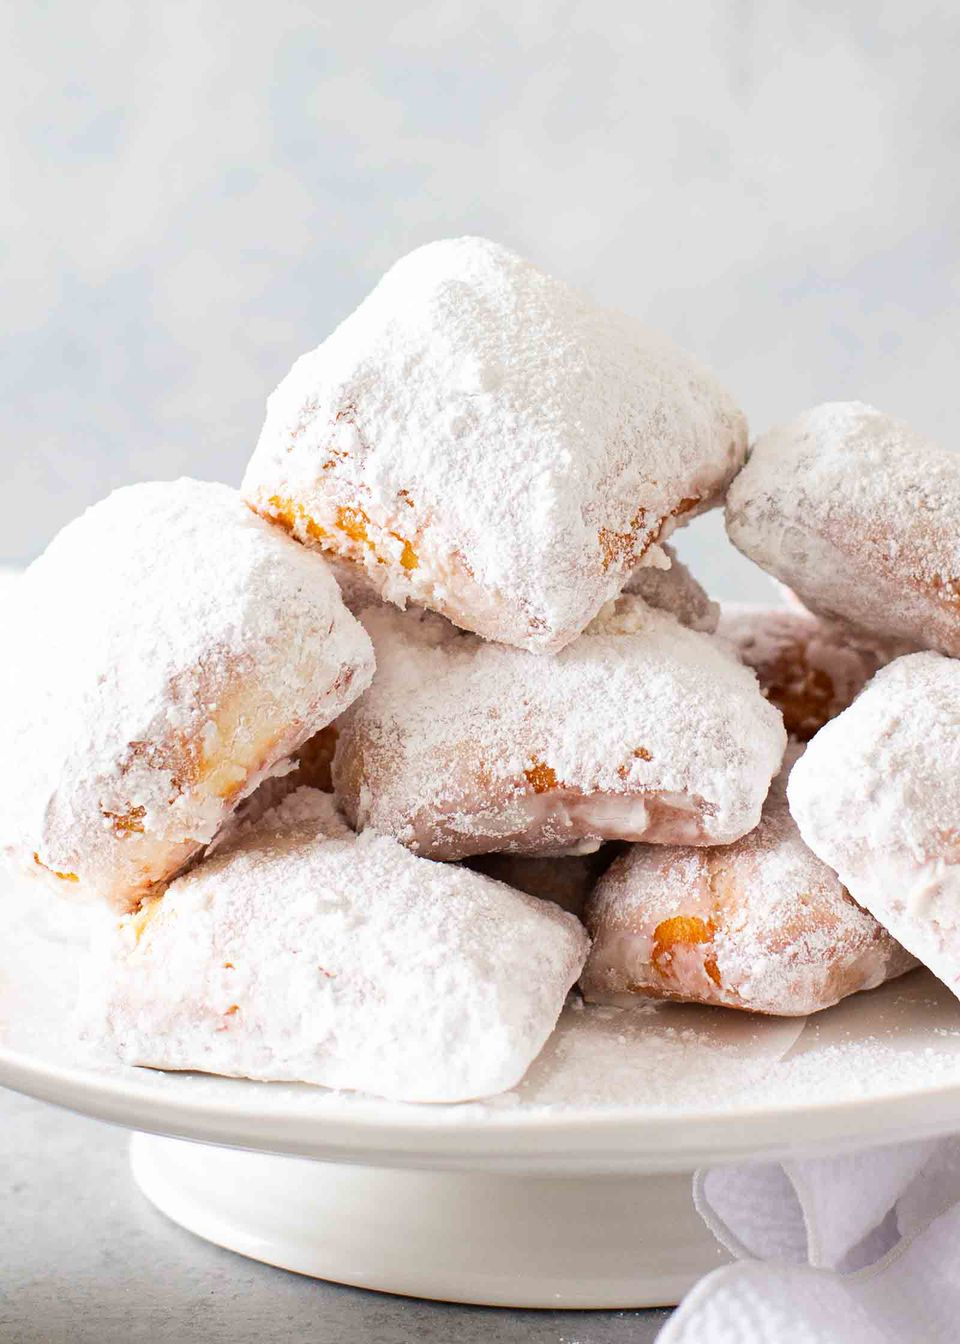 New Orleans Beignets stacked on a cake plate with two cups of espresso visible to the left and a paper towel to the right.